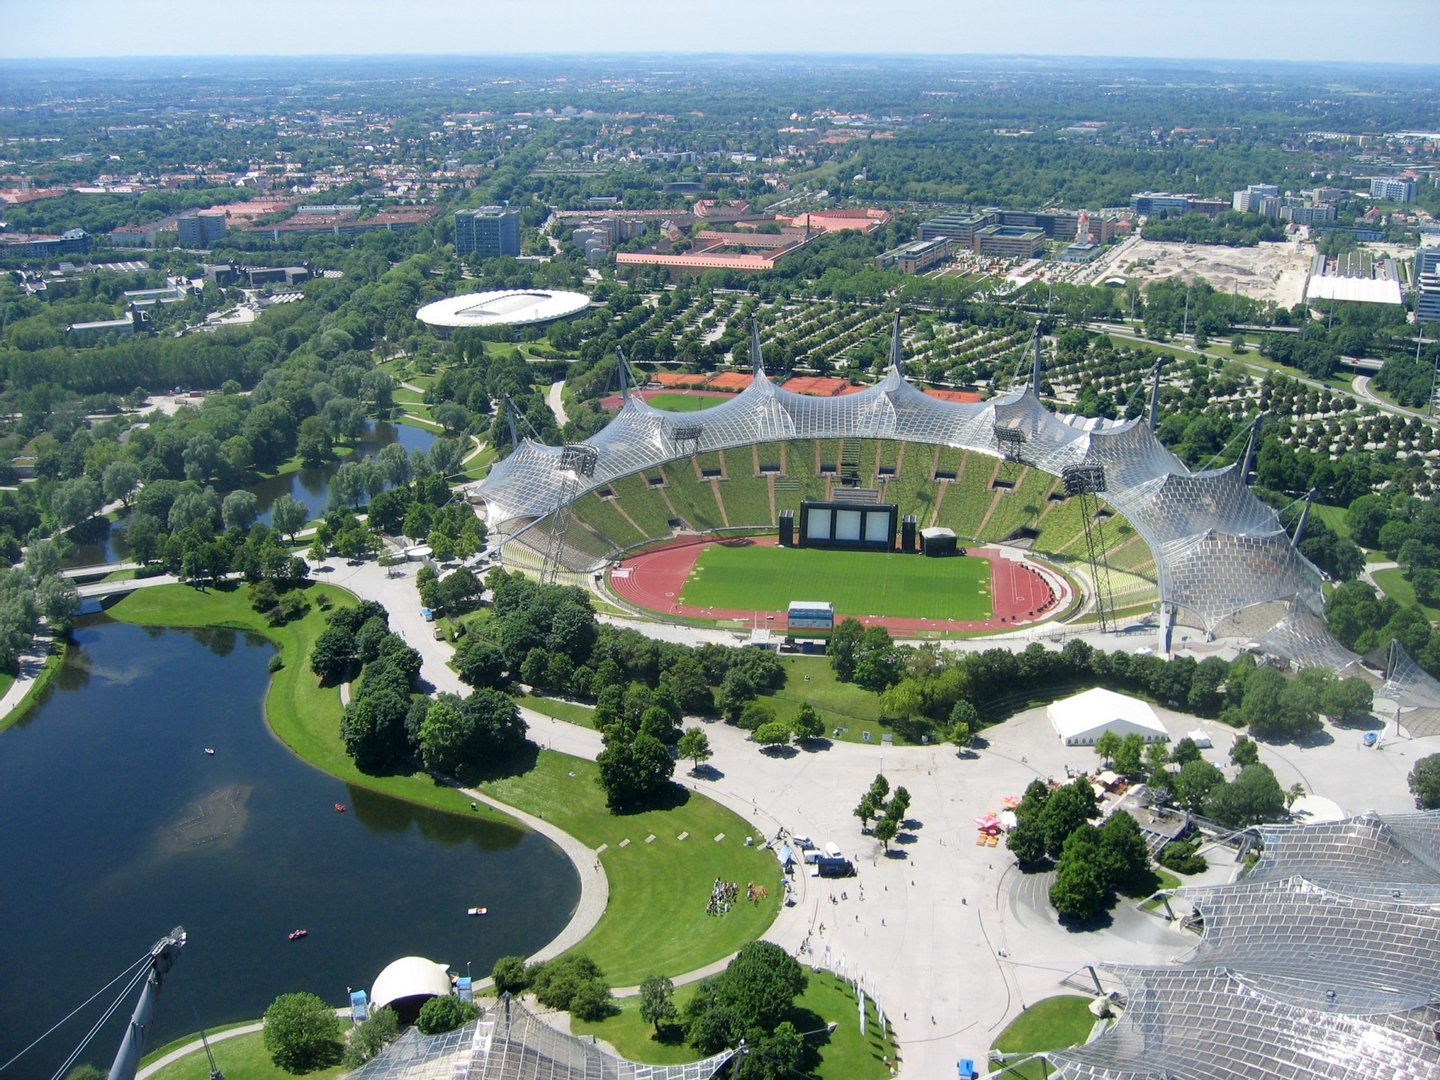 Frei-Otto-Roofing-for-main-sports-facilities-in-the-Munich-Olympic-Park-07